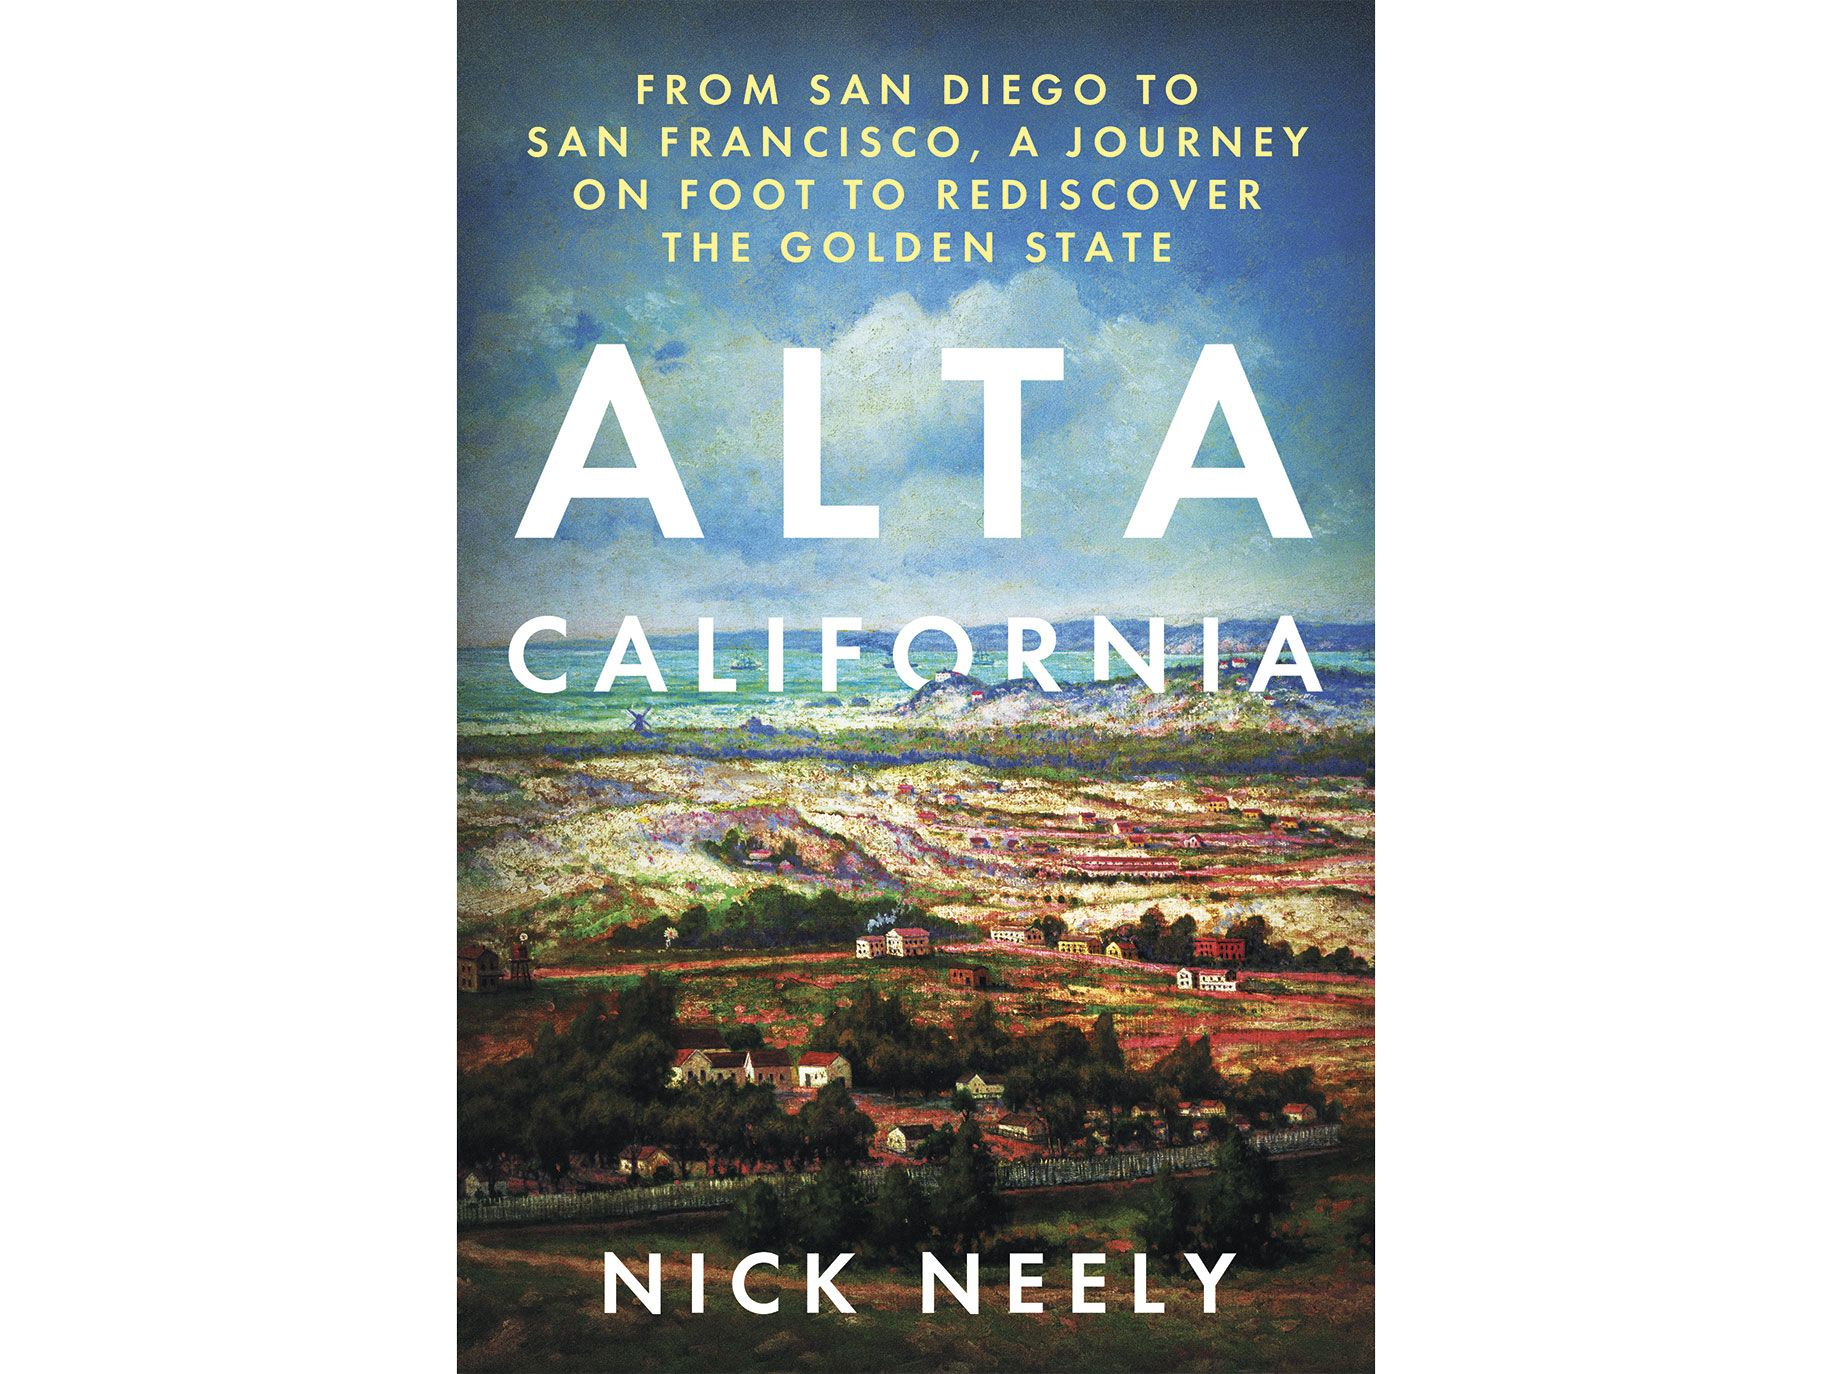 Alta California by Nick Neely, Counterpoint Press, 432 pages, $26